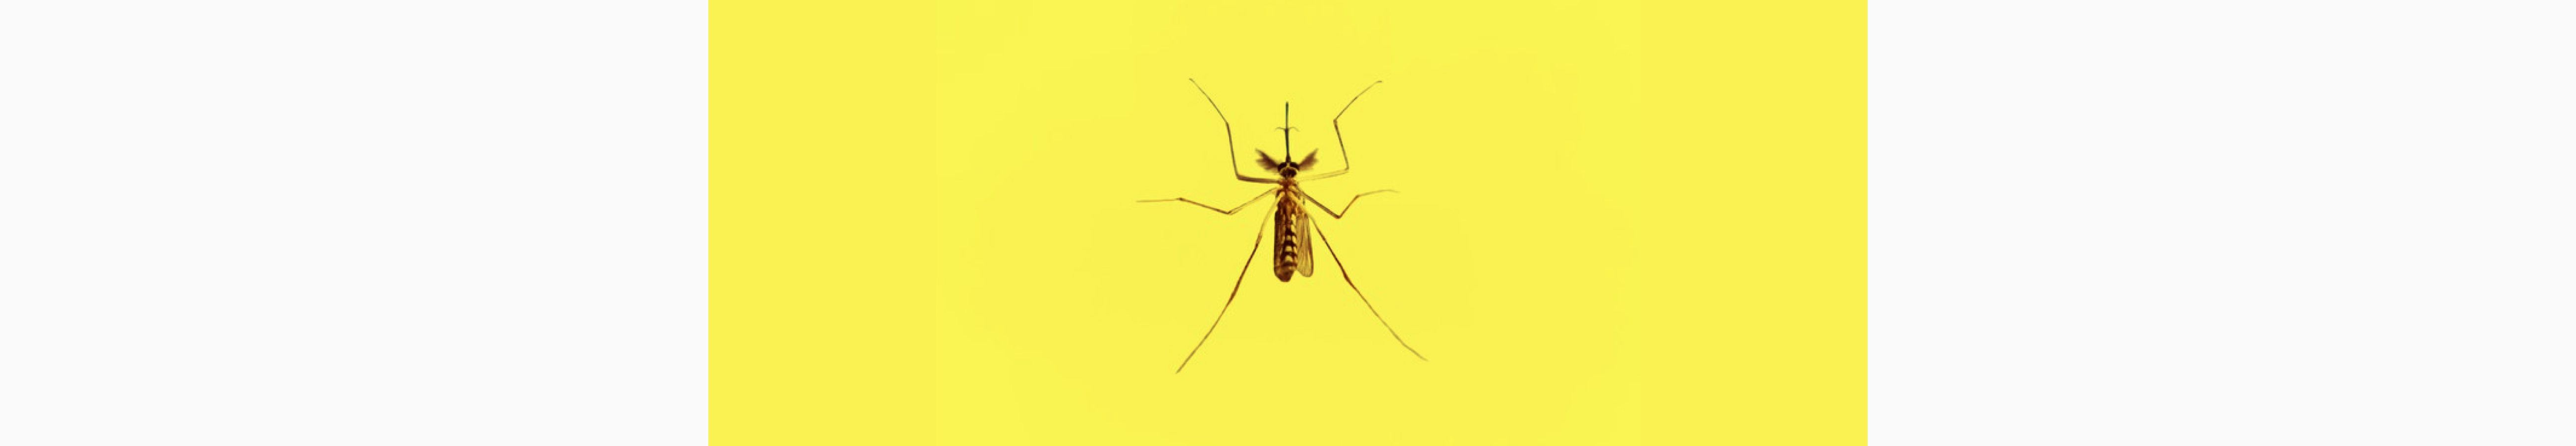 Picture of a mosquito